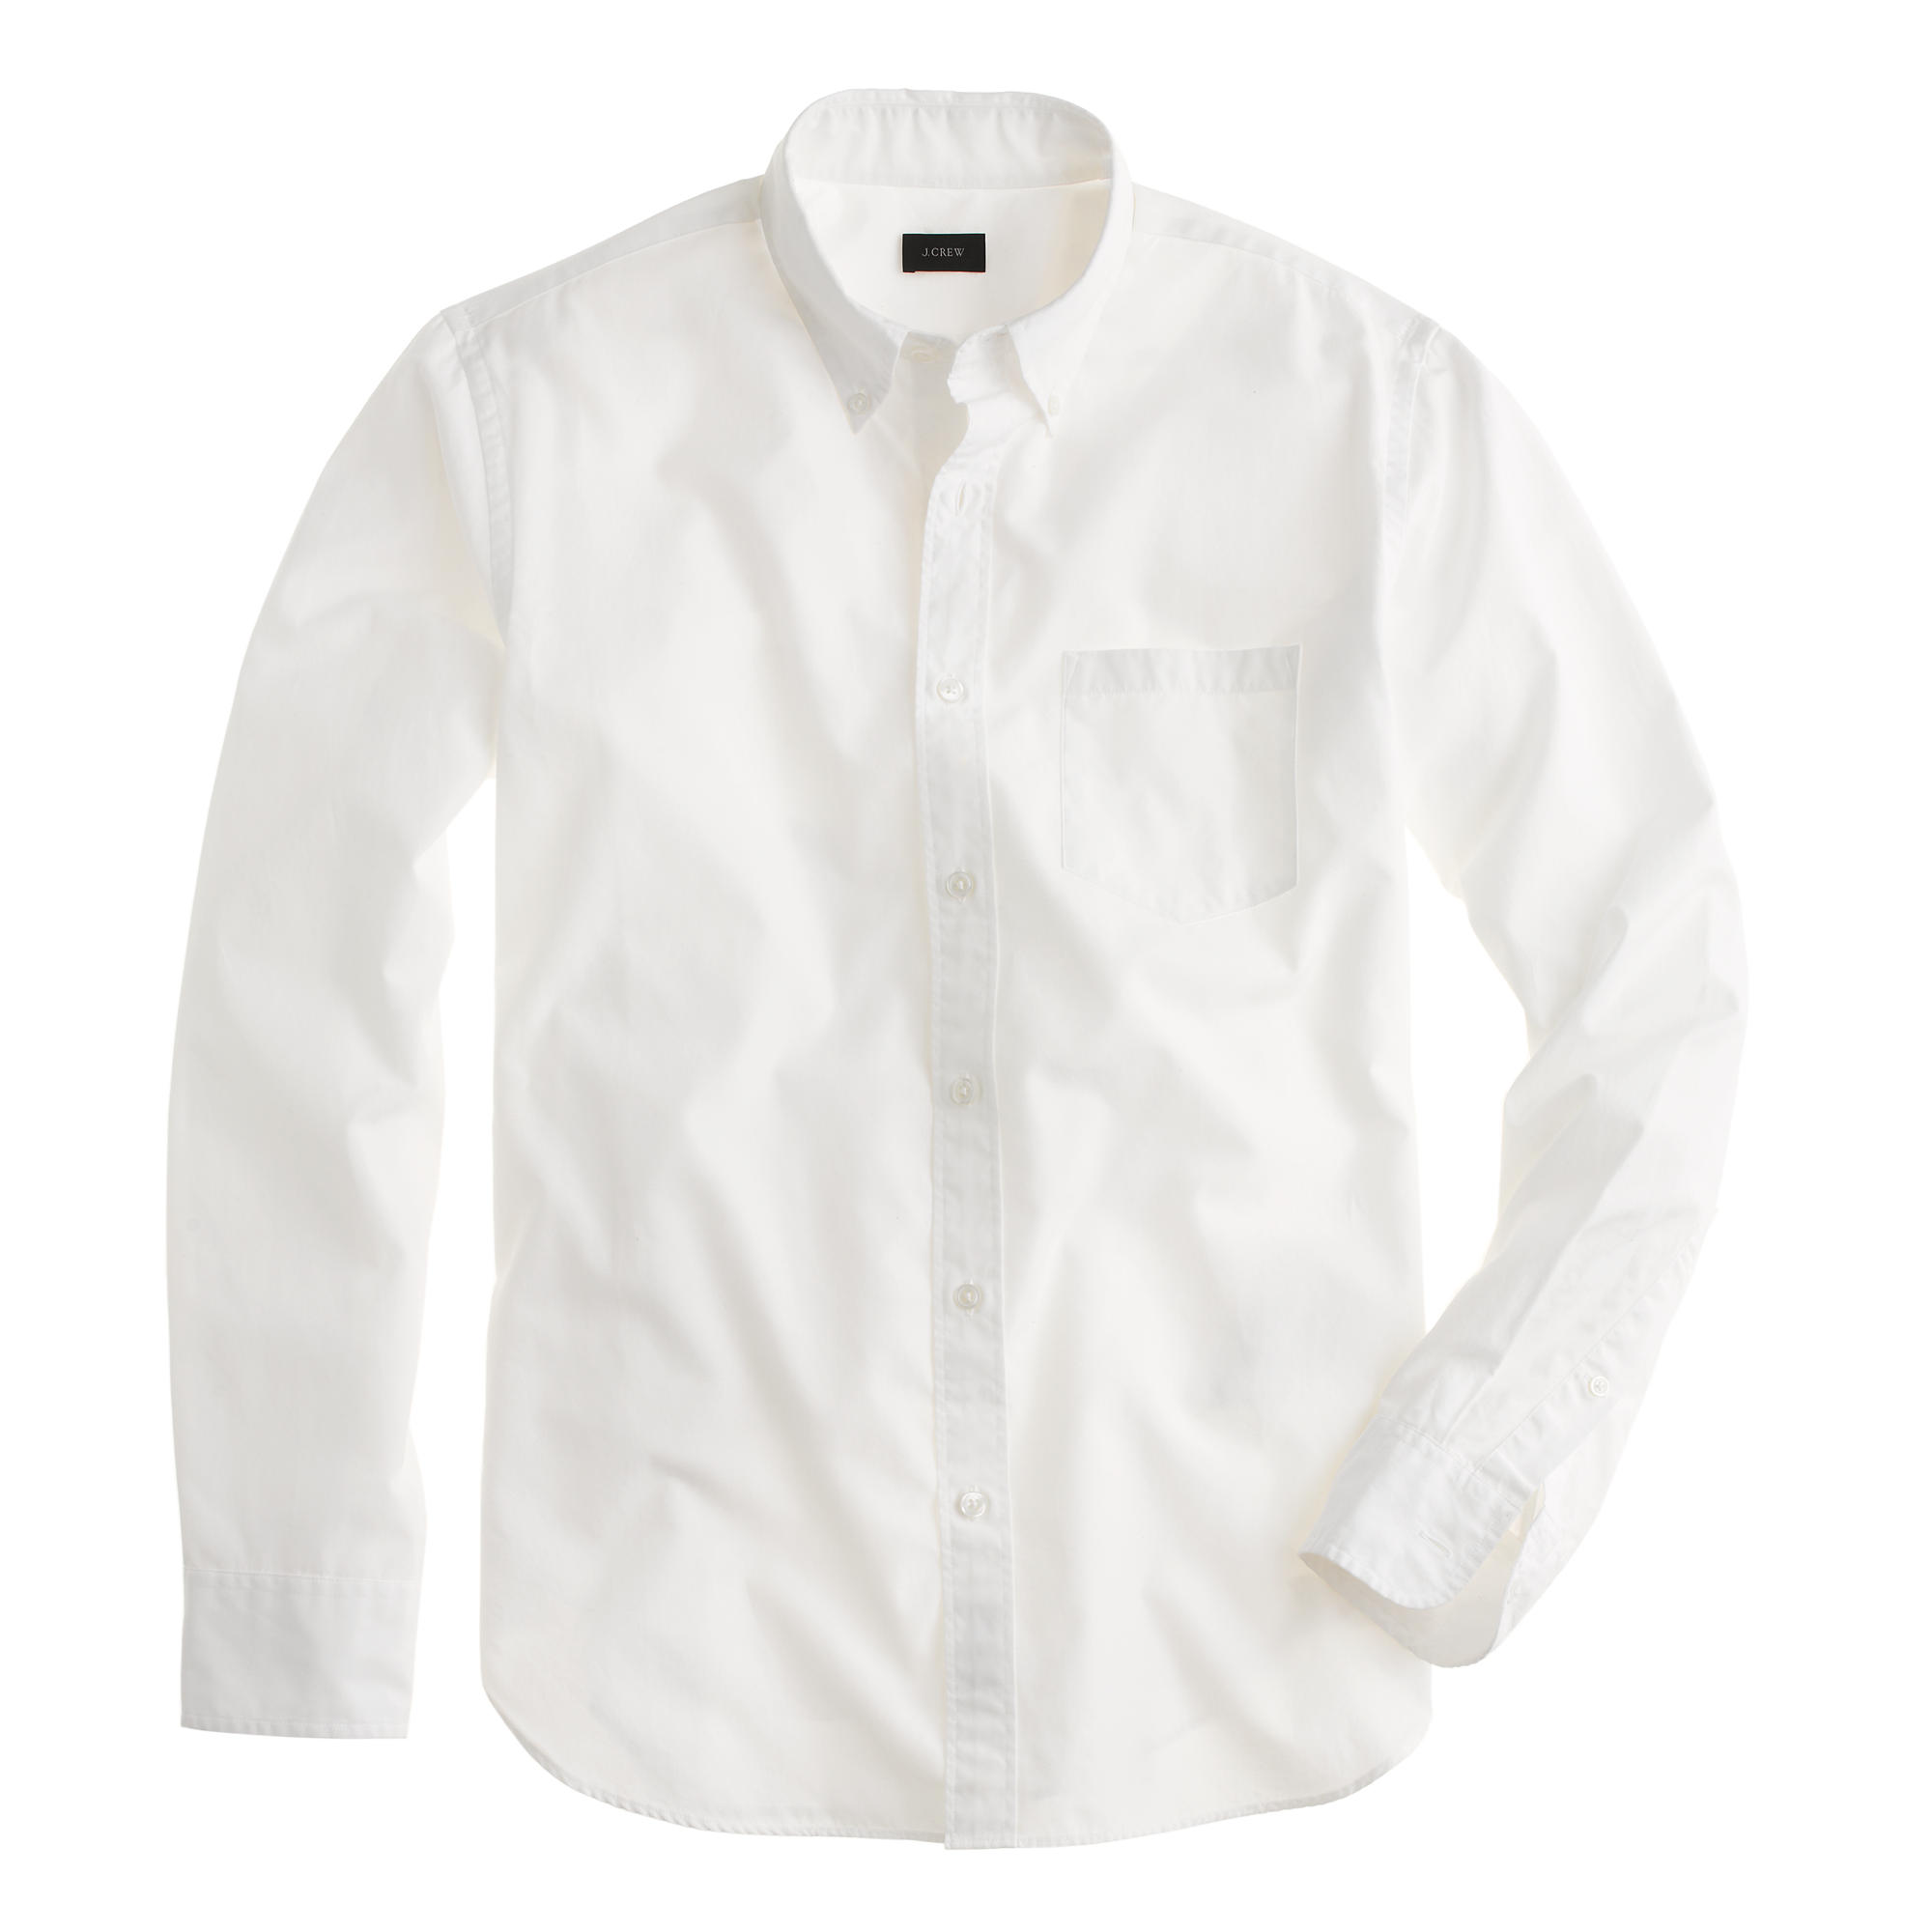 Mens White Shirt Black Buttons | Is Shirt